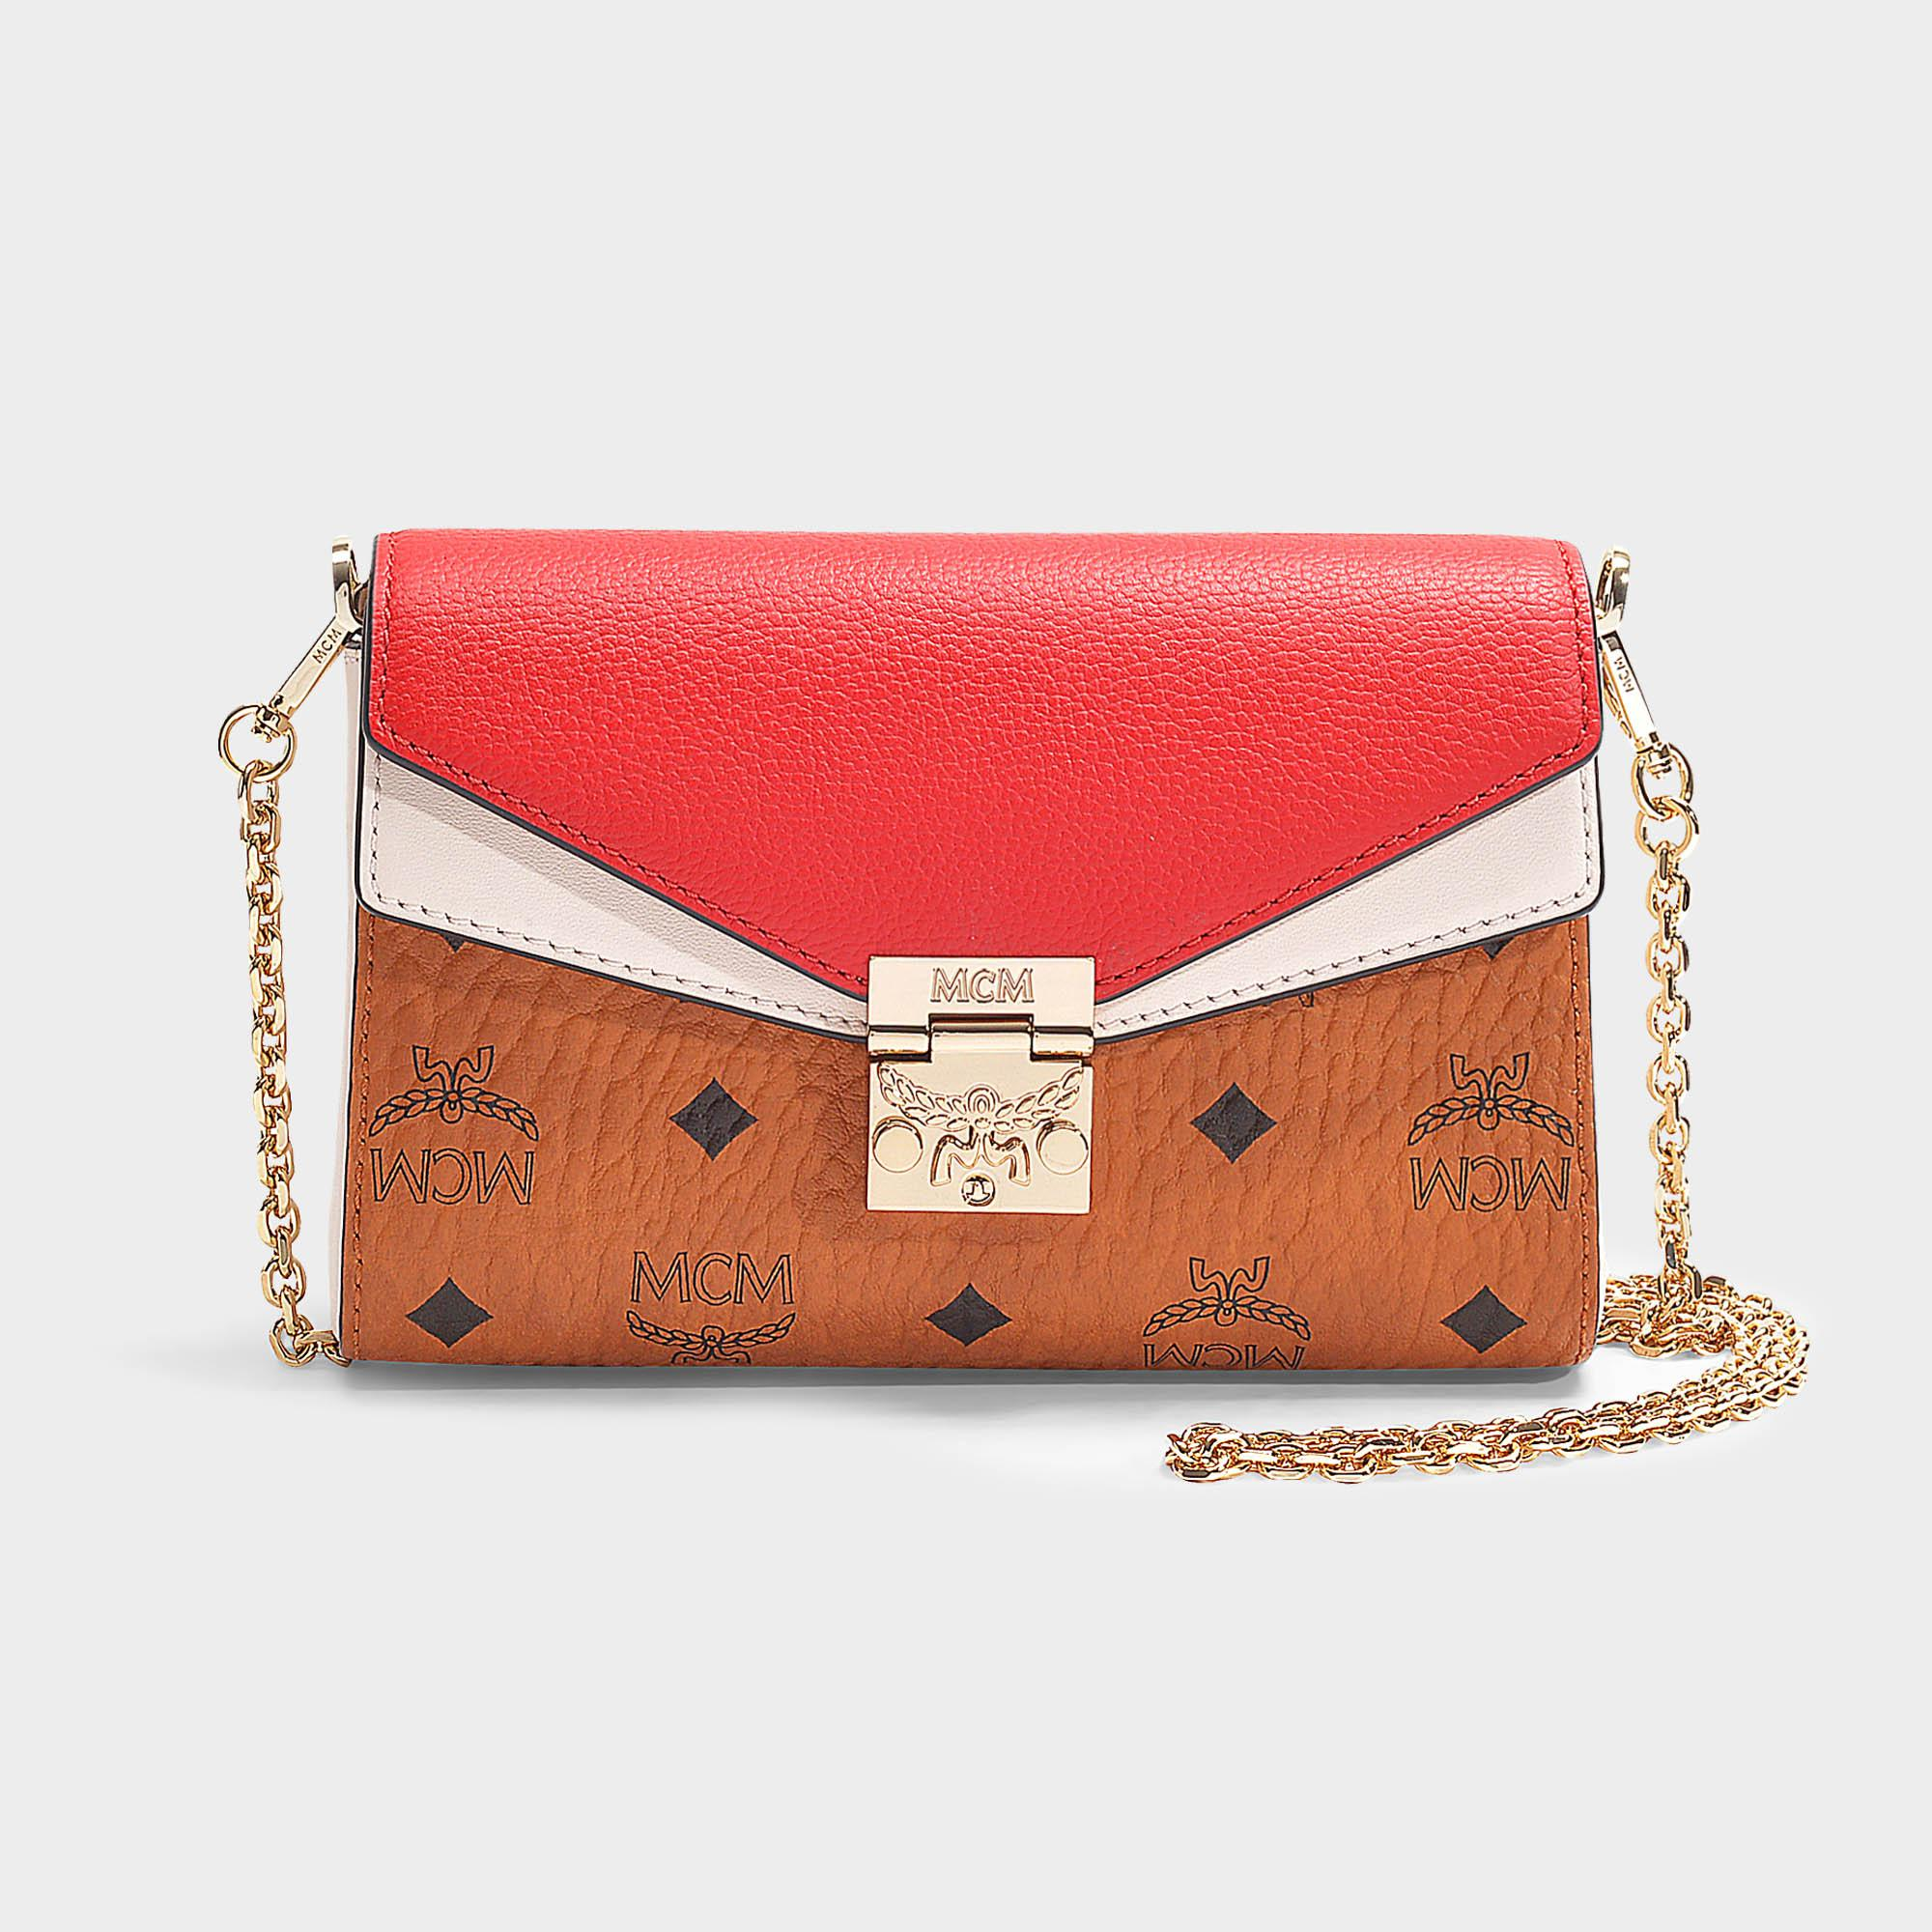 9e39c929d MCM - Millie Visetos Leather Block Small Crossbody Bag In Cognac And Red  Coated Canvas -. View fullscreen